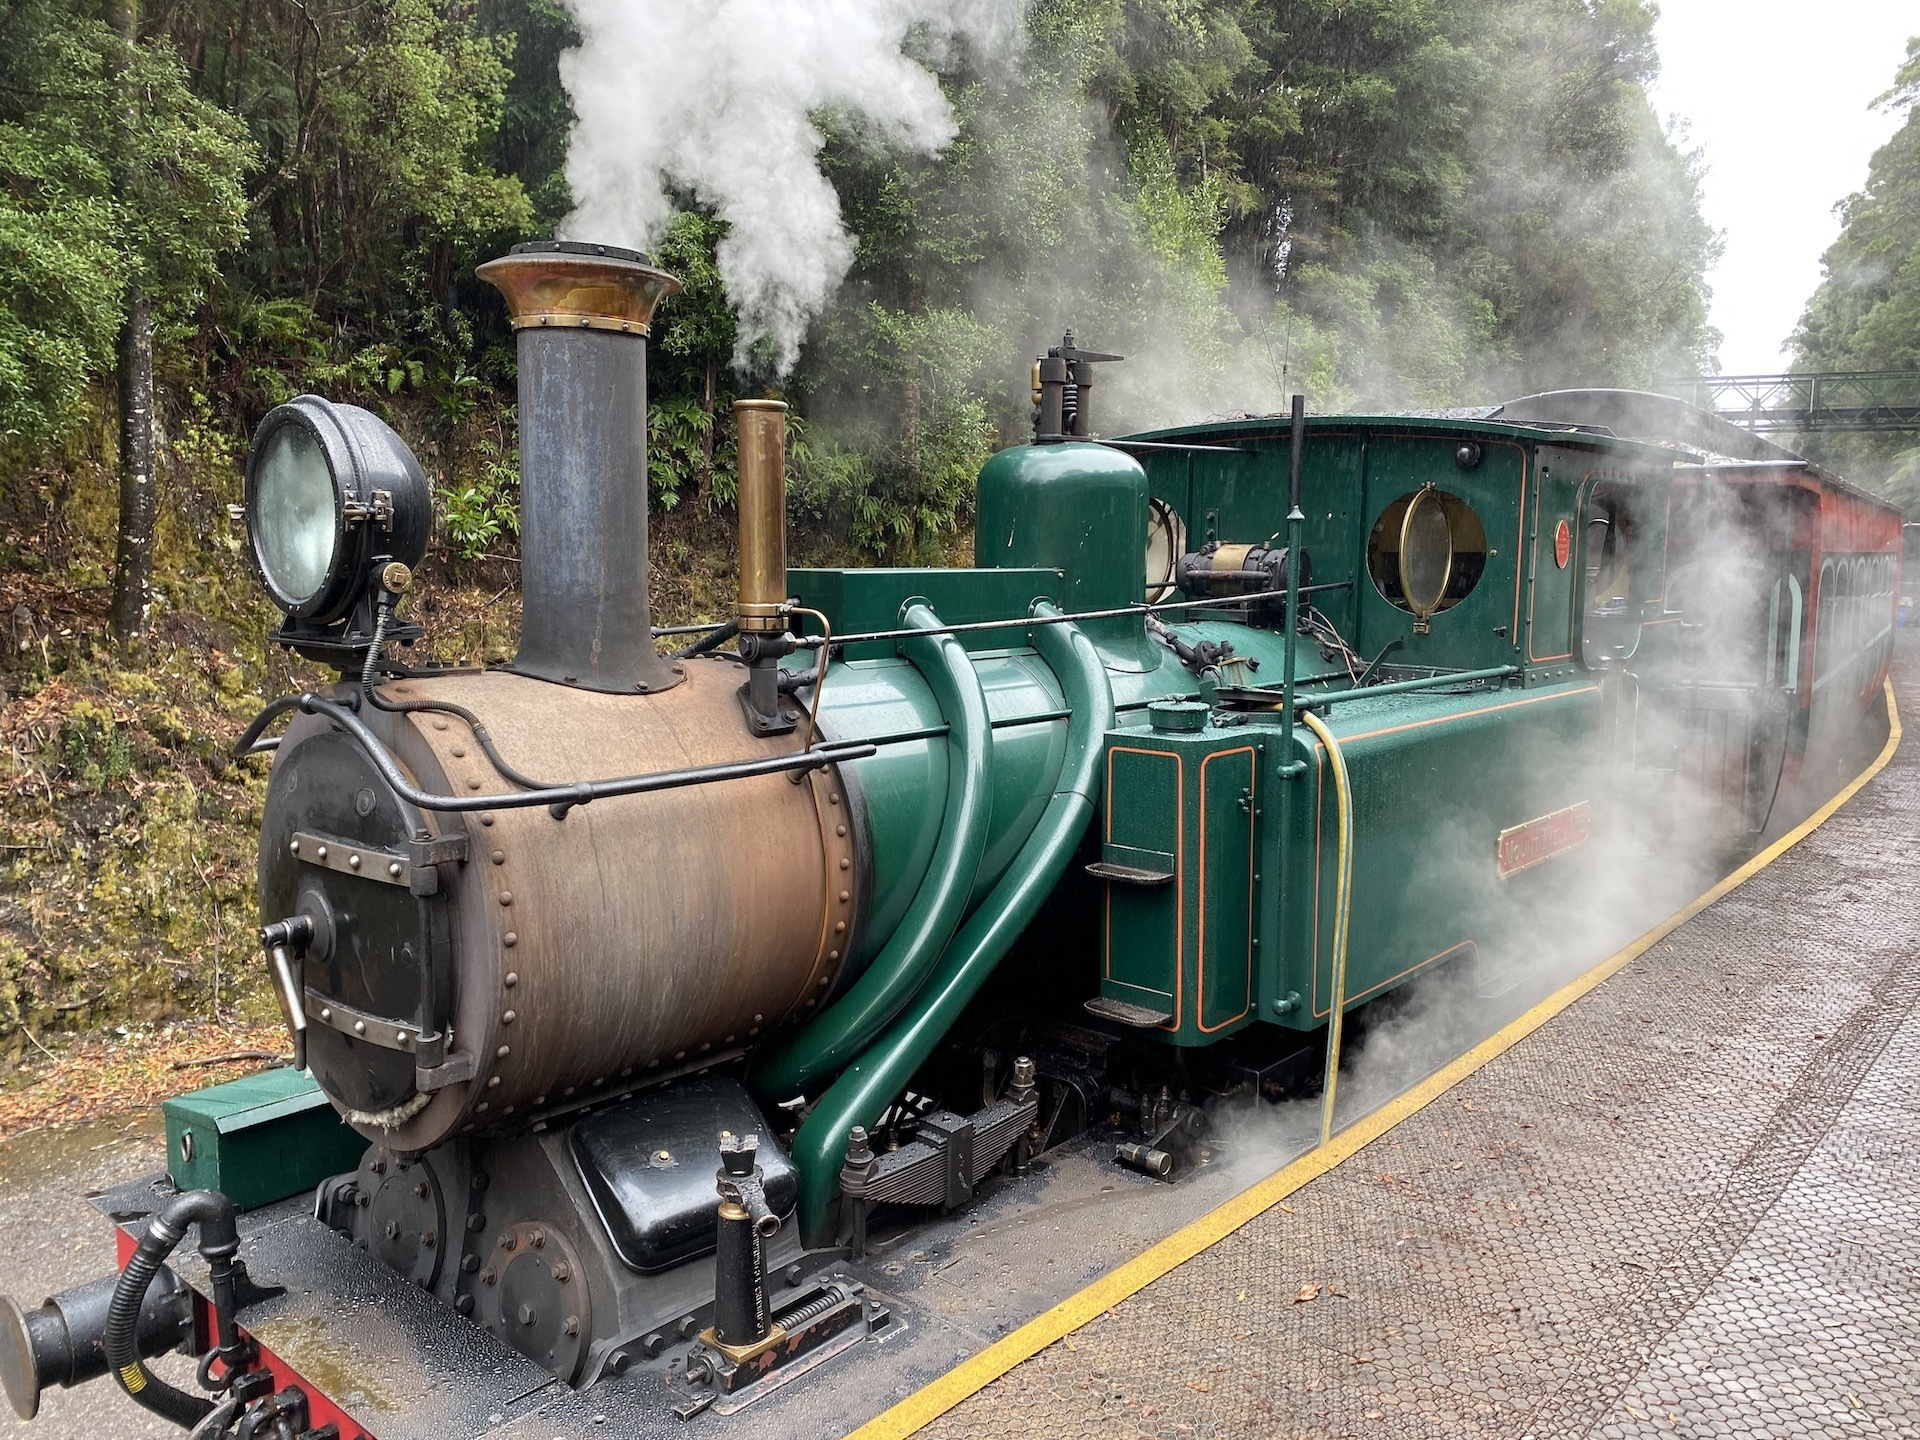 How To Travel Tasmania With Your Adventure Family - Sarah Tayler, Tasmania, Queenstown, Train,